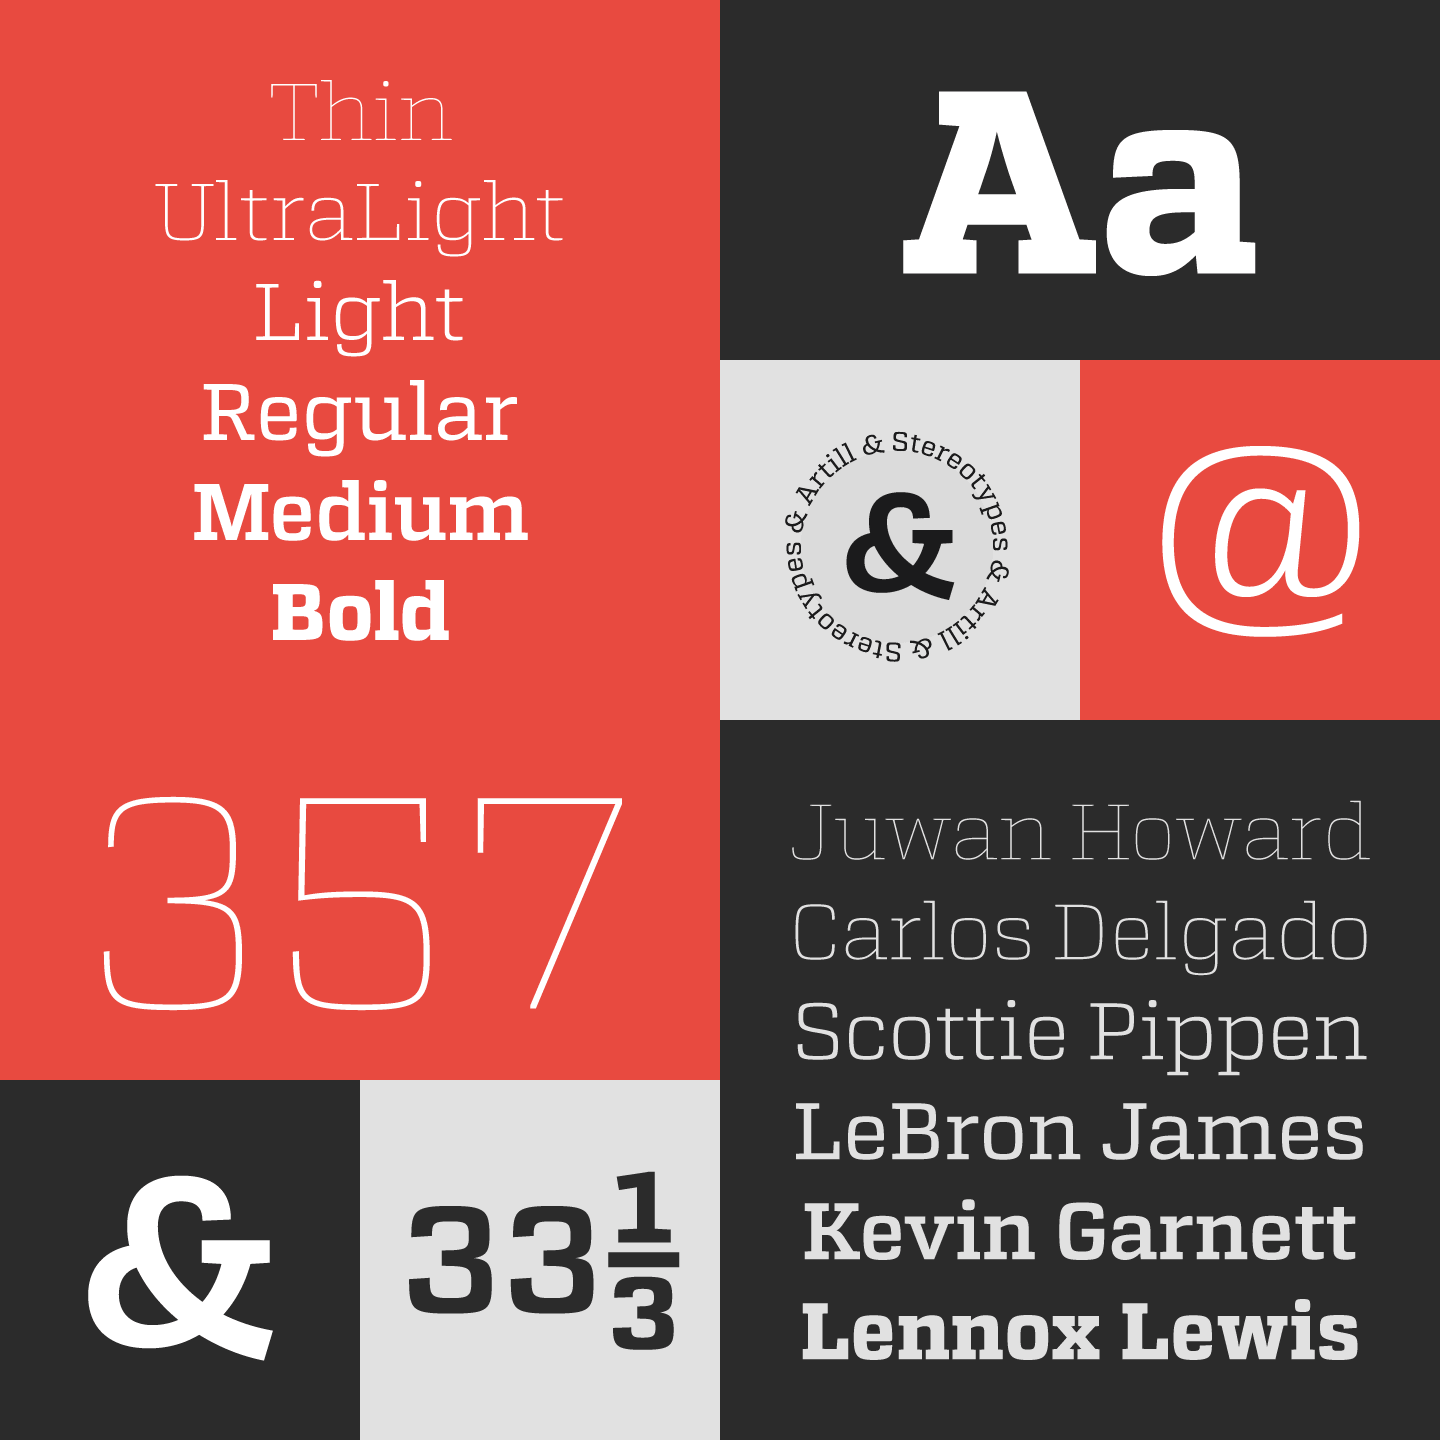 Atletico font, a slab serif type family from Stereotypes.